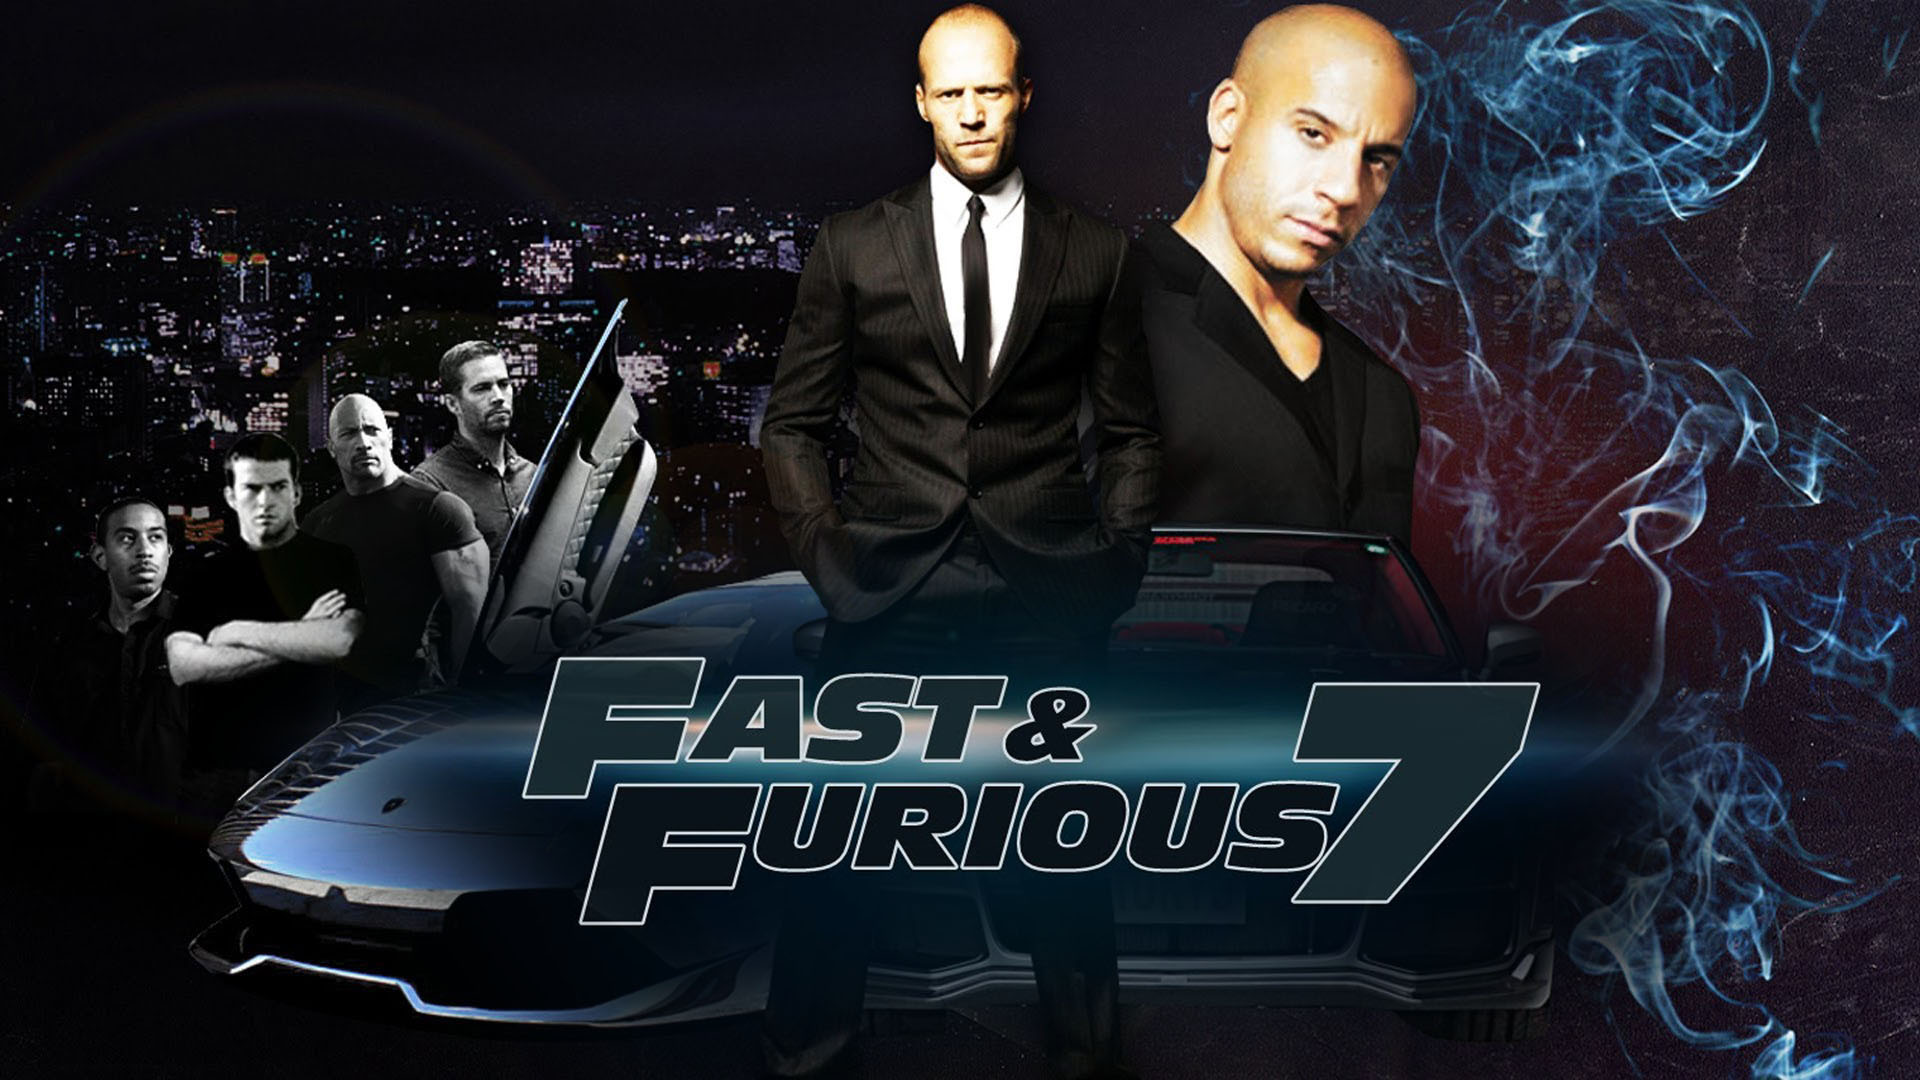 Fast And Furious 7 Wallpaper: Wallpaper Fast And Furious 7